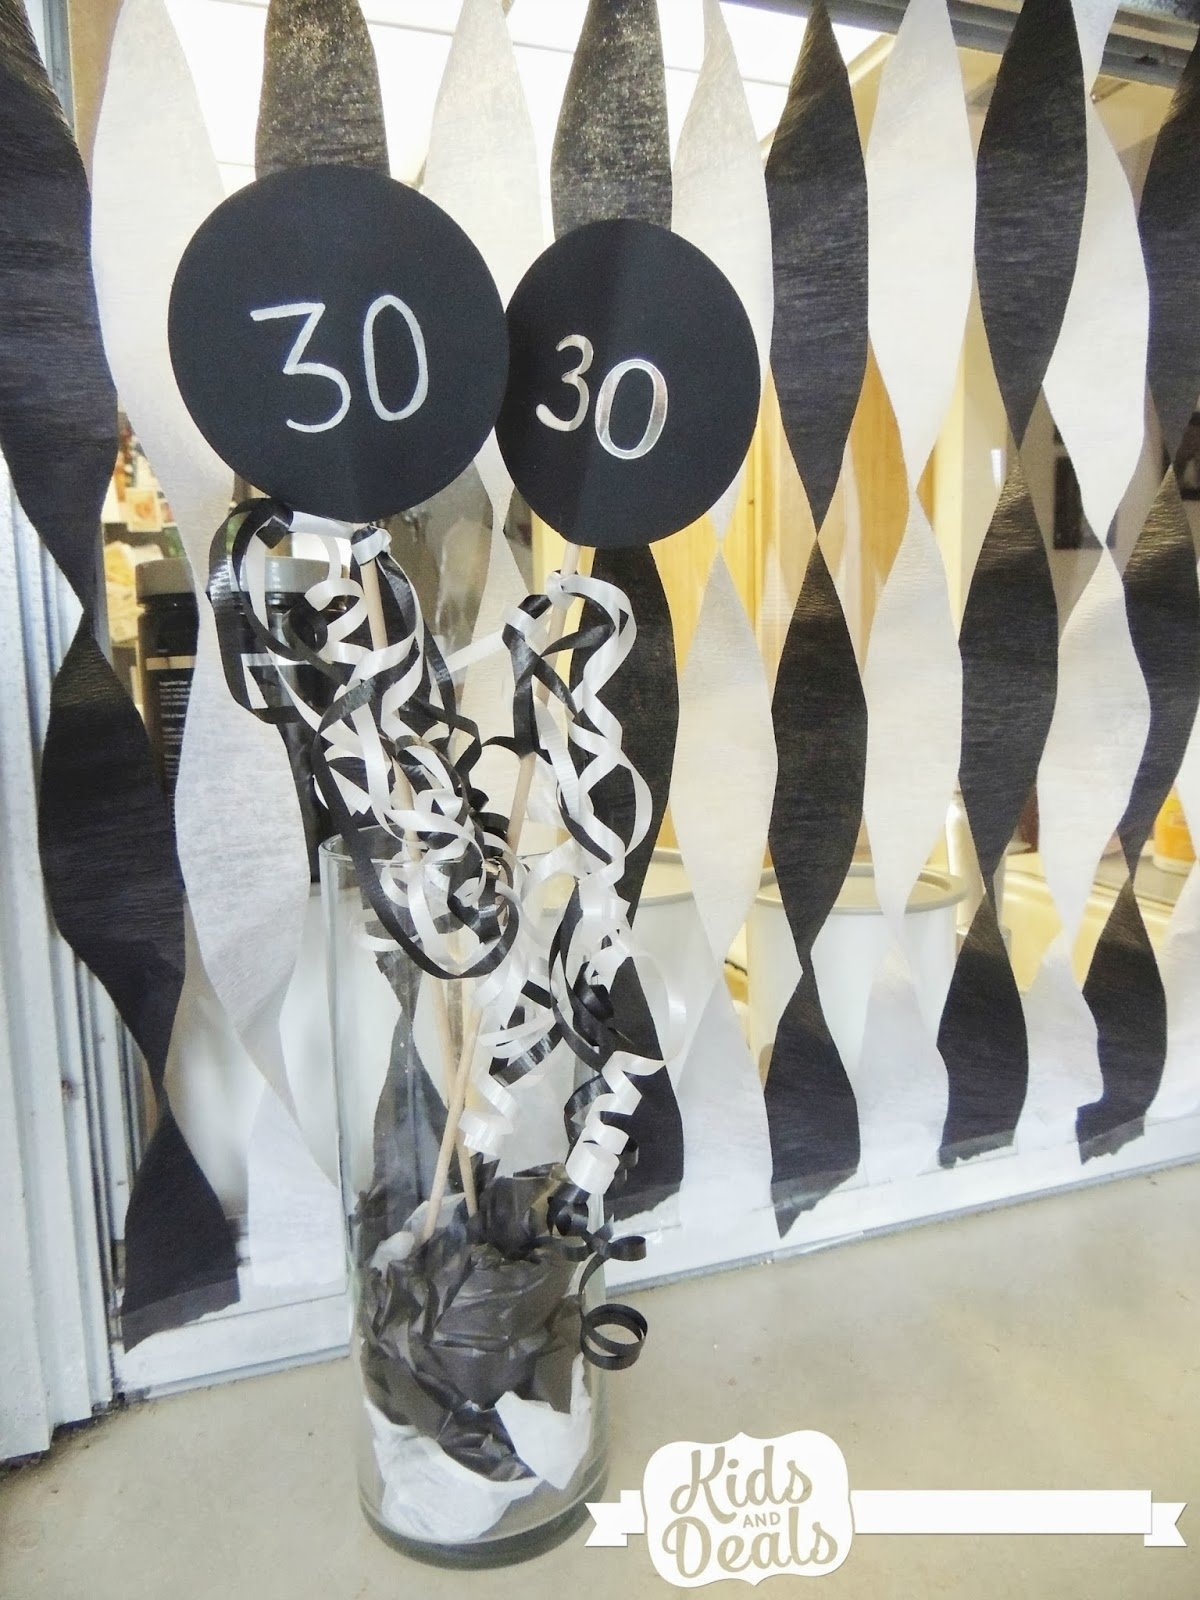 10 Amazing 30Th Birthday Party Ideas For Husband Kids And Deals A 30th